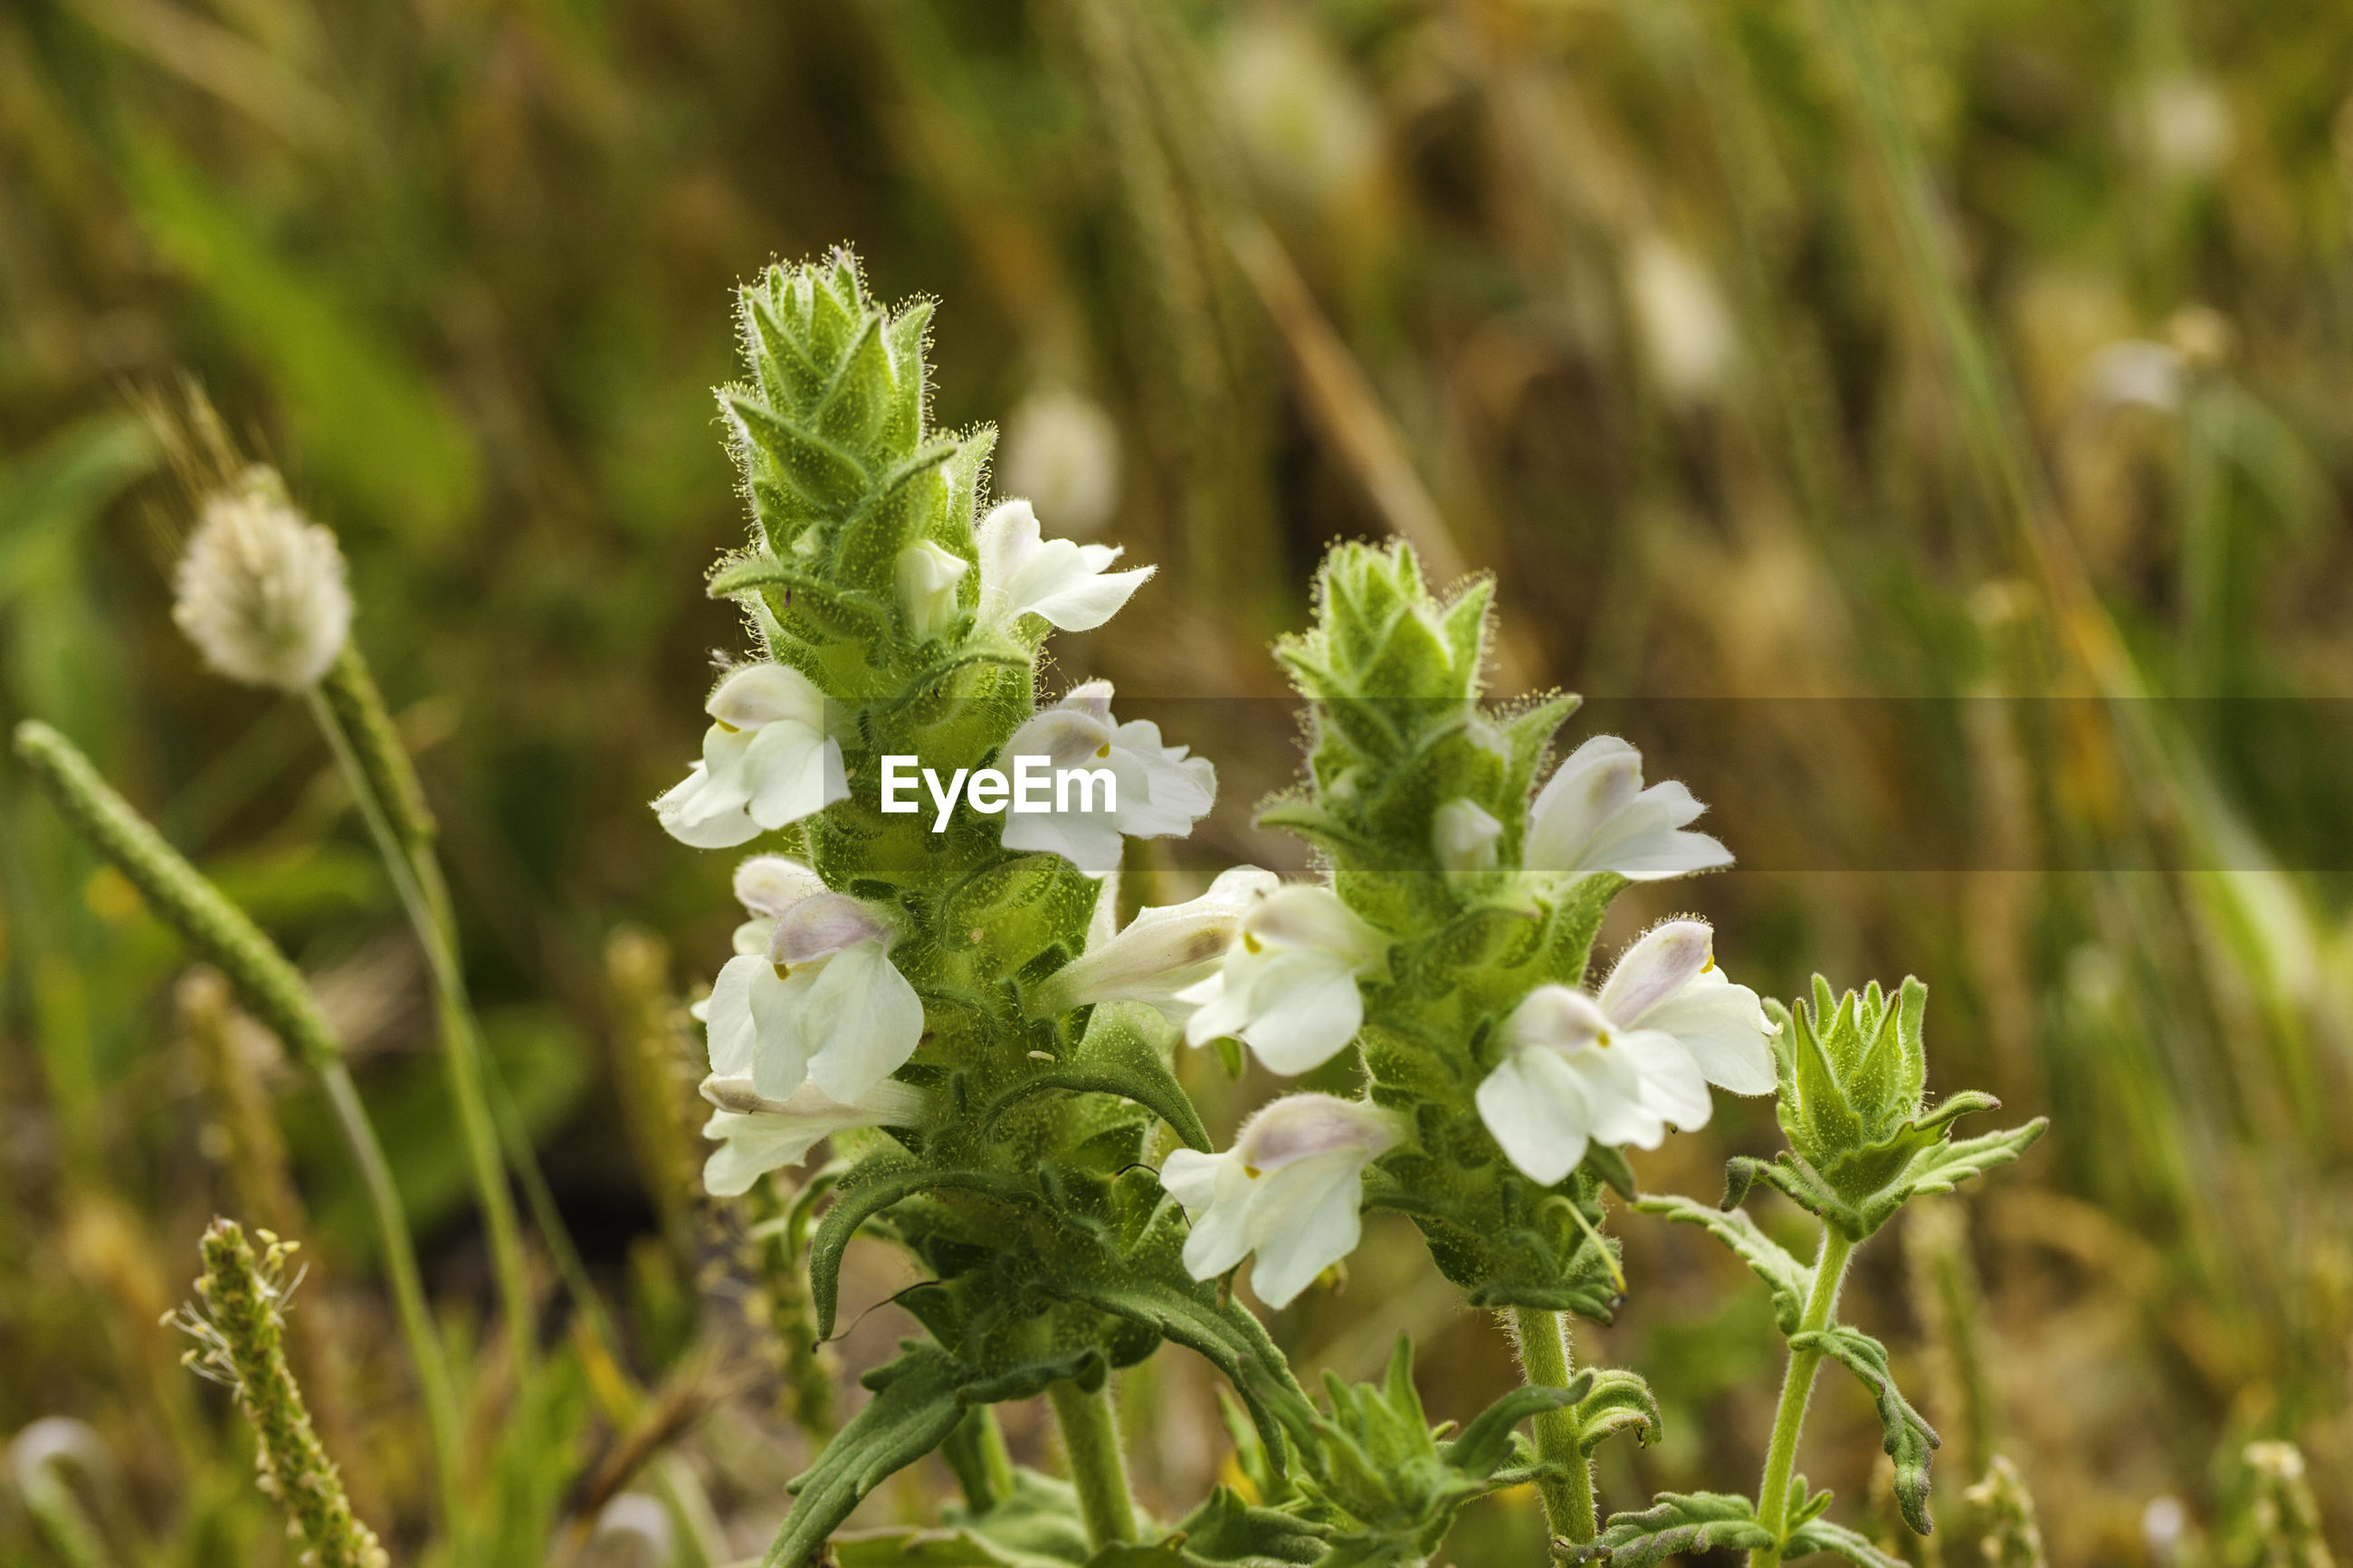 CLOSE-UP OF WHITE FLOWERING PLANTS IN SUNLIGHT